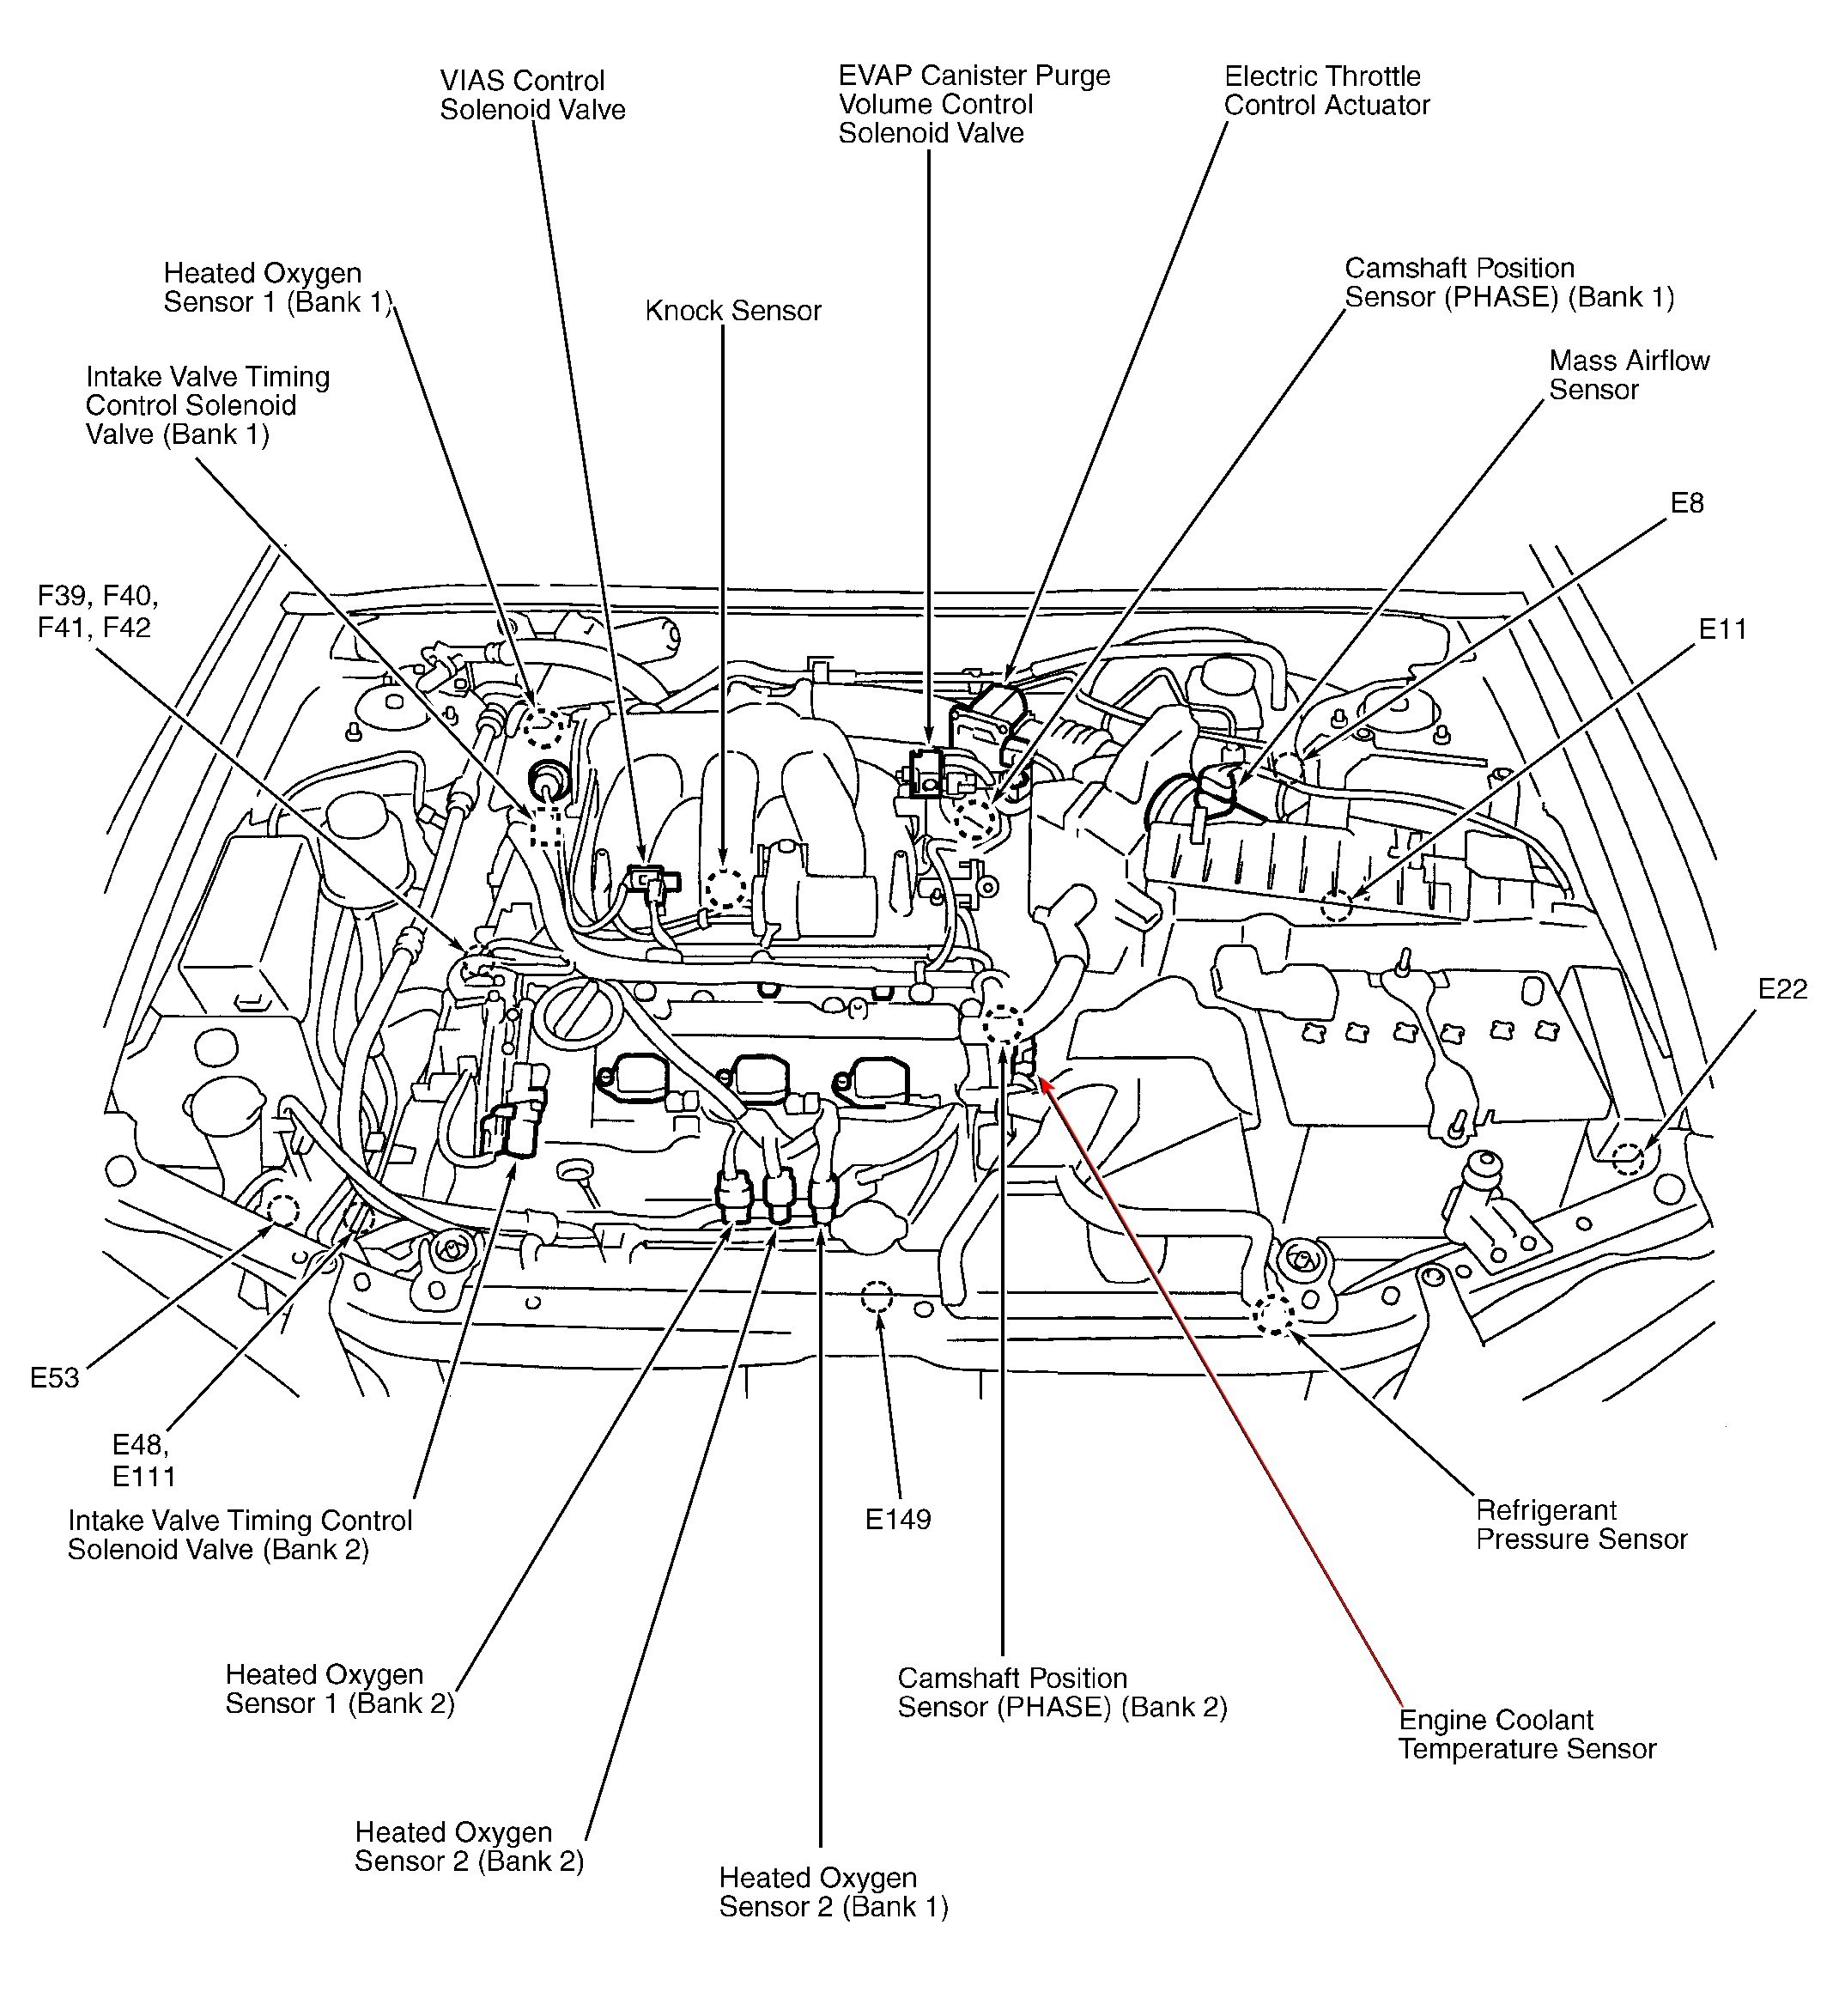 wiring diagram as well 1989 jeep cherokee vacuum line diagram jeep cj7 vacuum diagram as well jeep grand cherokee fuel line diagram [ 2142 x 2348 Pixel ]